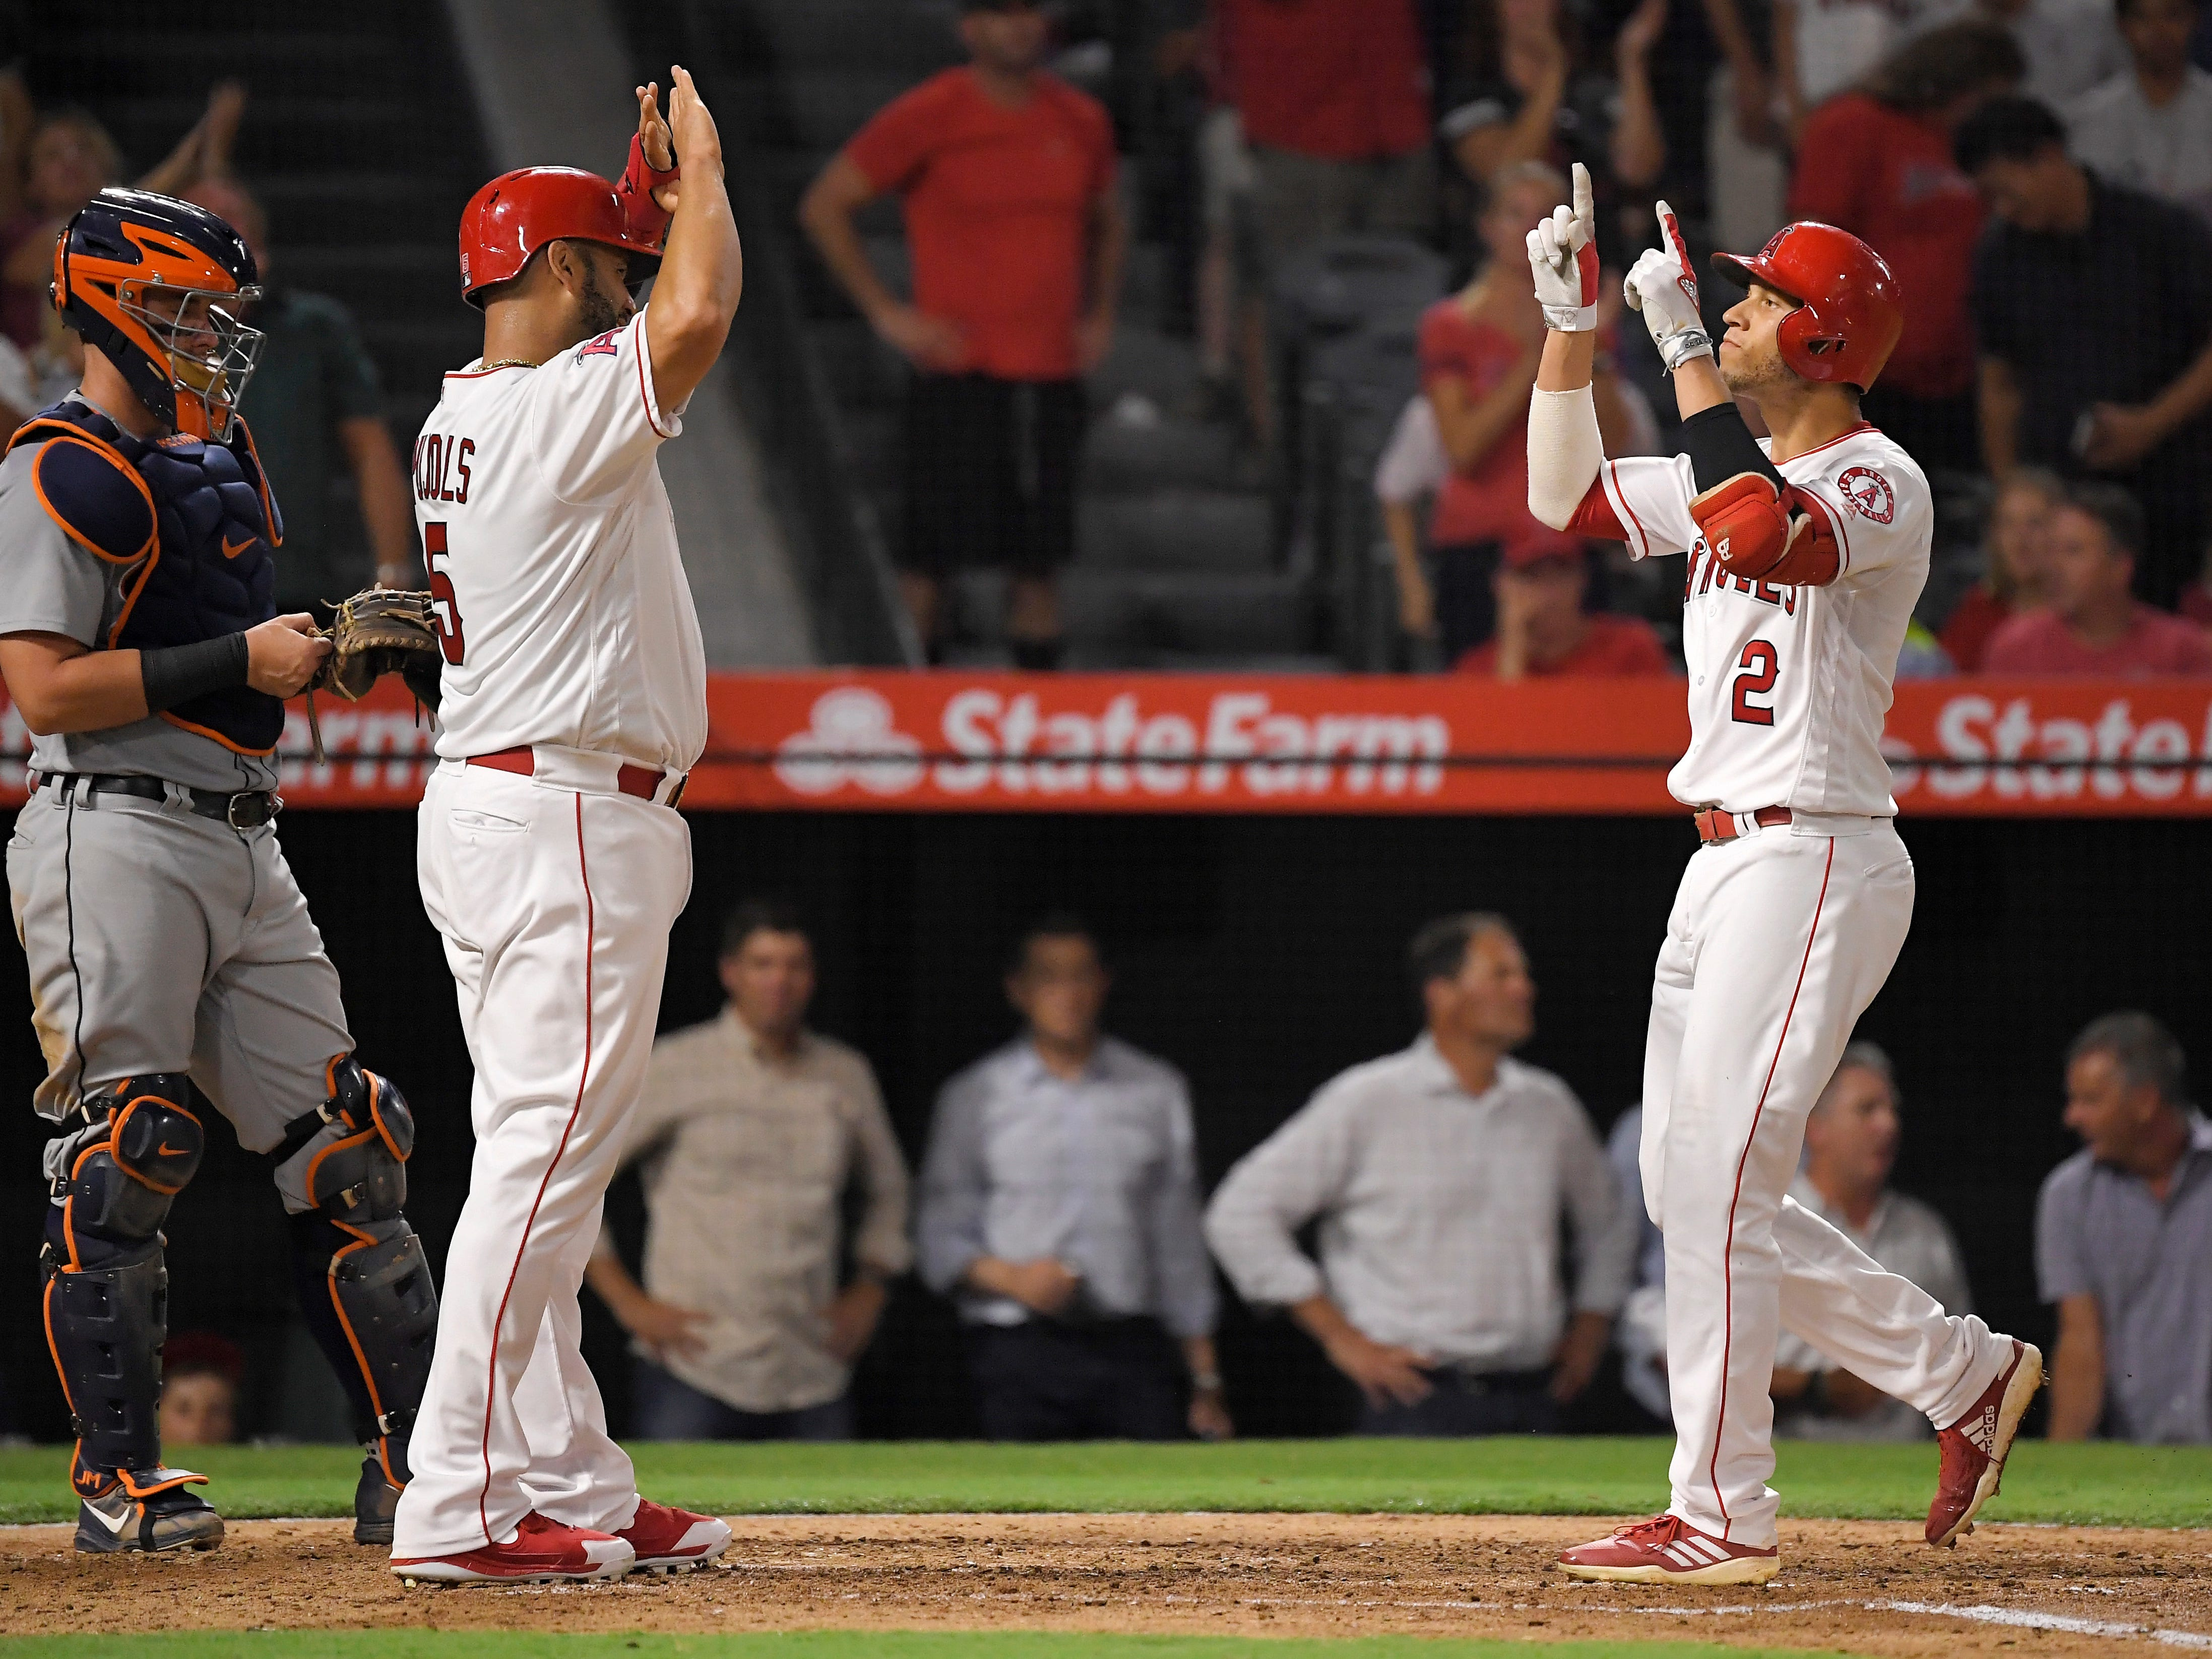 Los Angeles Angels' Andrelton Simmons, right, celebrates with Albert Pujols, center, after hitting a two-run home run during the fourth inning.